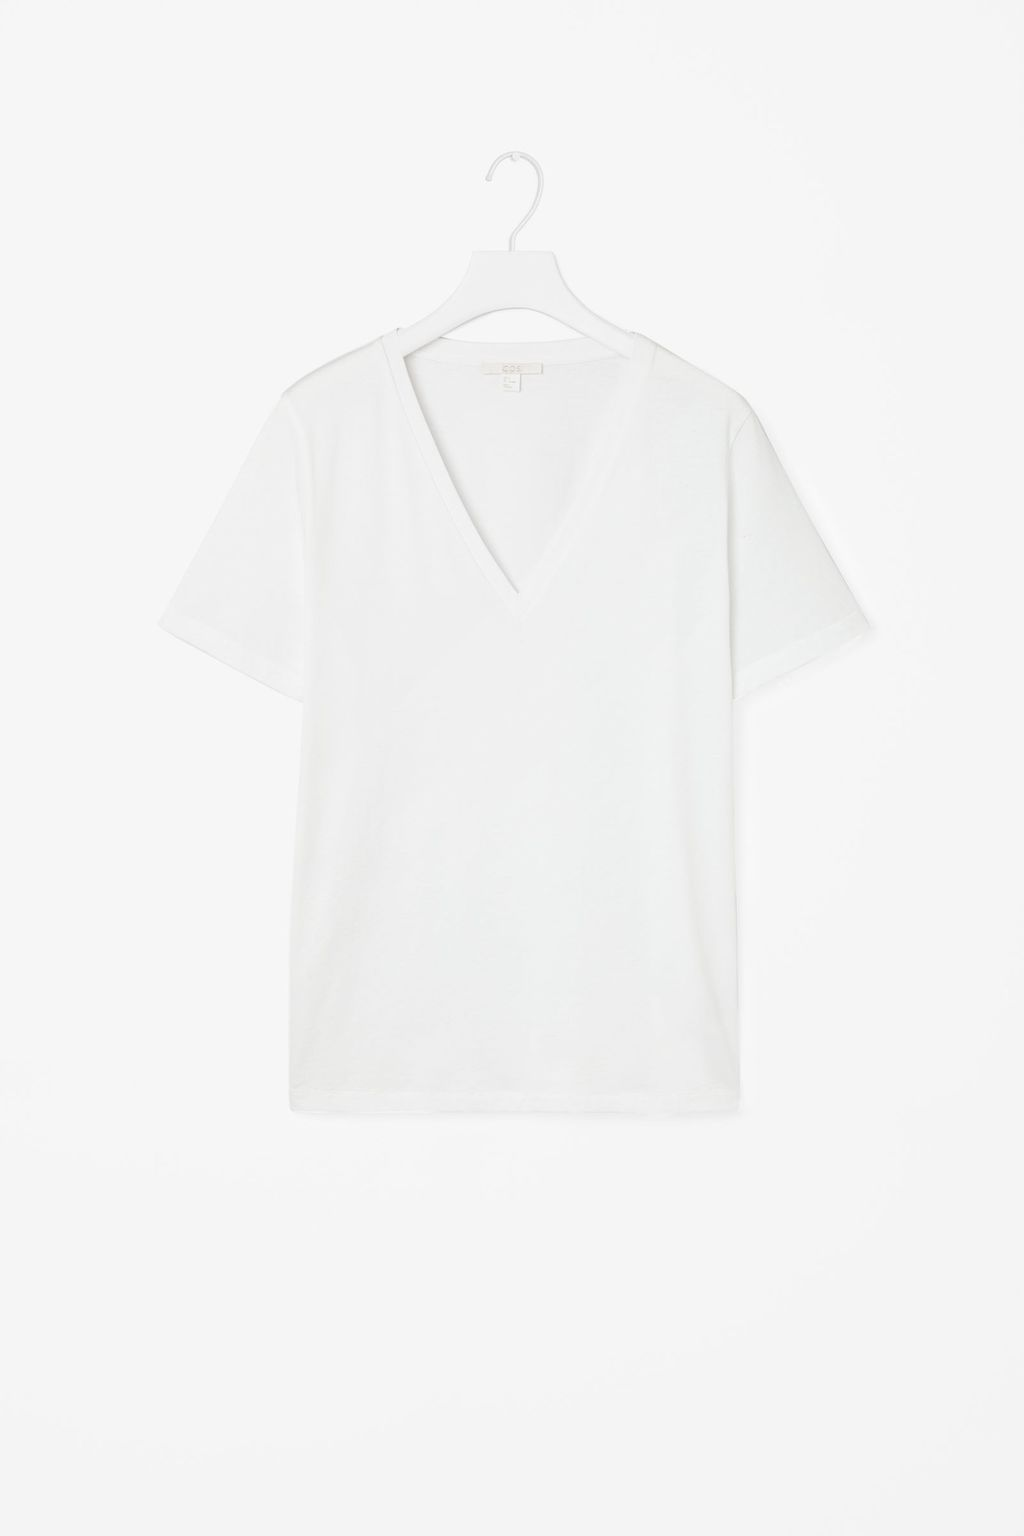 V Neck Cotton T Shirt - neckline: v-neck; pattern: plain; style: t-shirt; predominant colour: white; occasions: casual; length: standard; fibres: cotton - 100%; fit: body skimming; sleeve length: short sleeve; sleeve style: standard; pattern type: fabric; texture group: jersey - stretchy/drapey; season: s/s 2016; wardrobe: basic